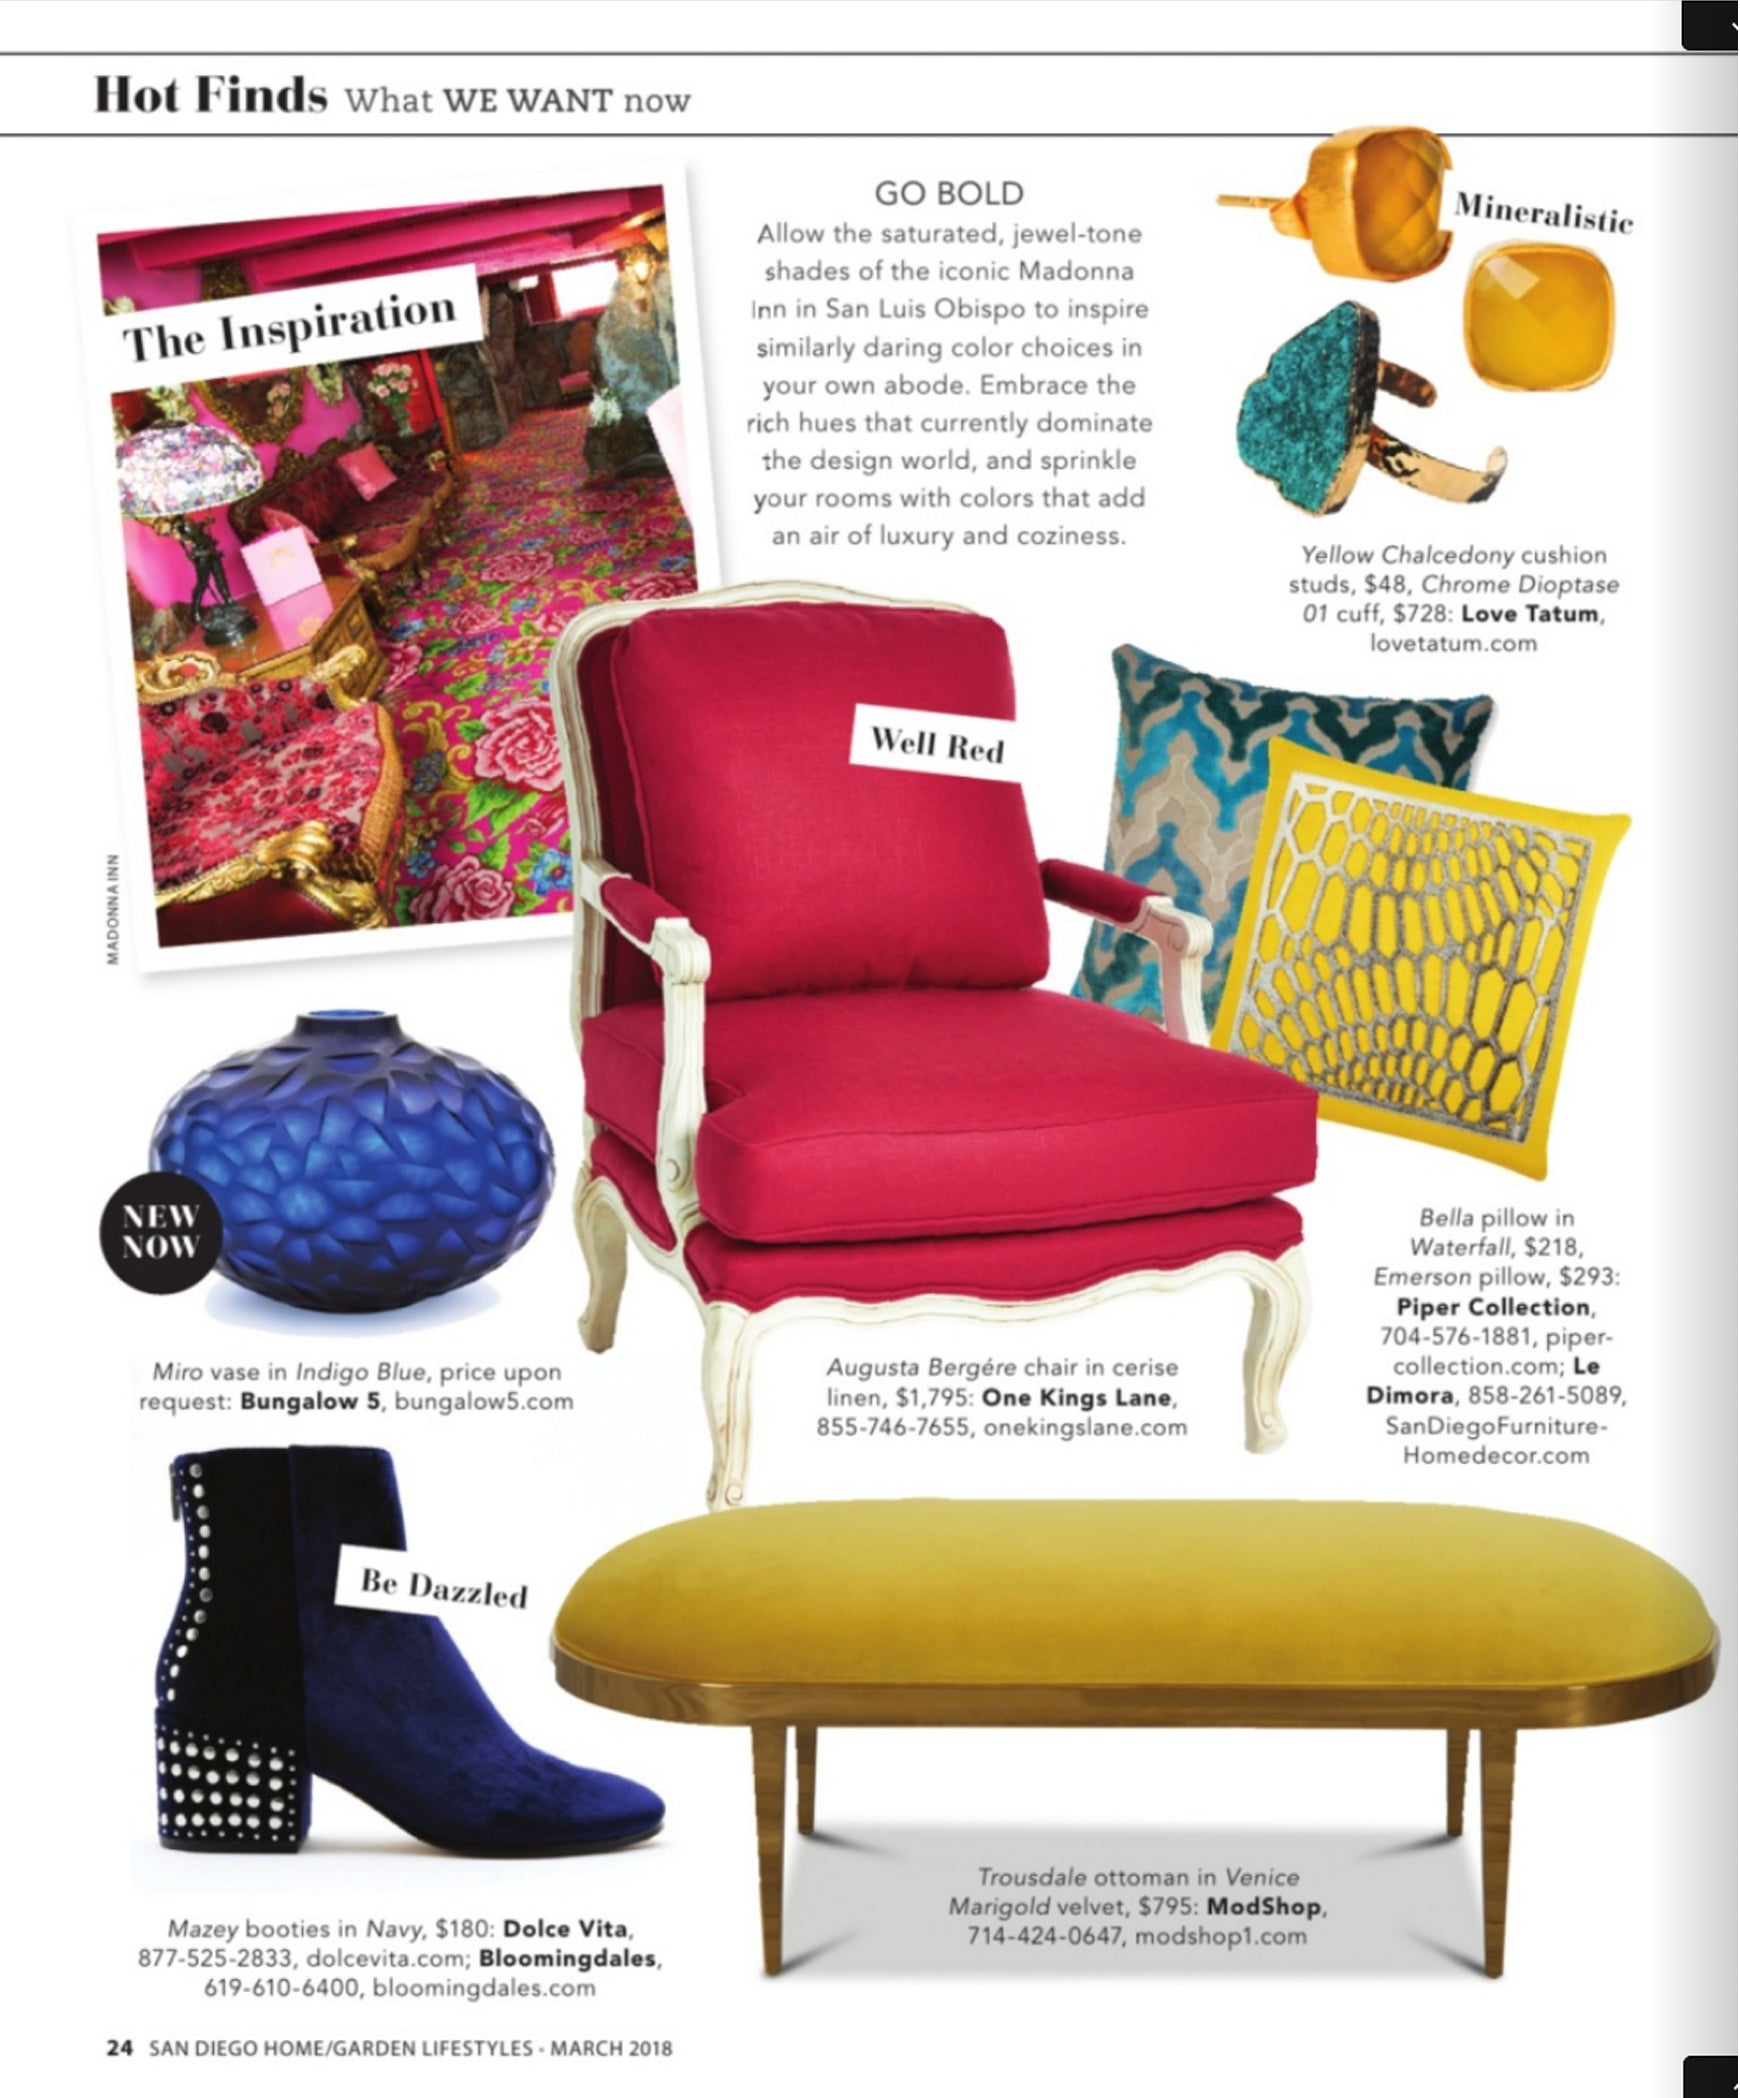 san diego home garden lifestyles magazine article hot finds features modshop's trousdale ottoman in venice marigold velvet